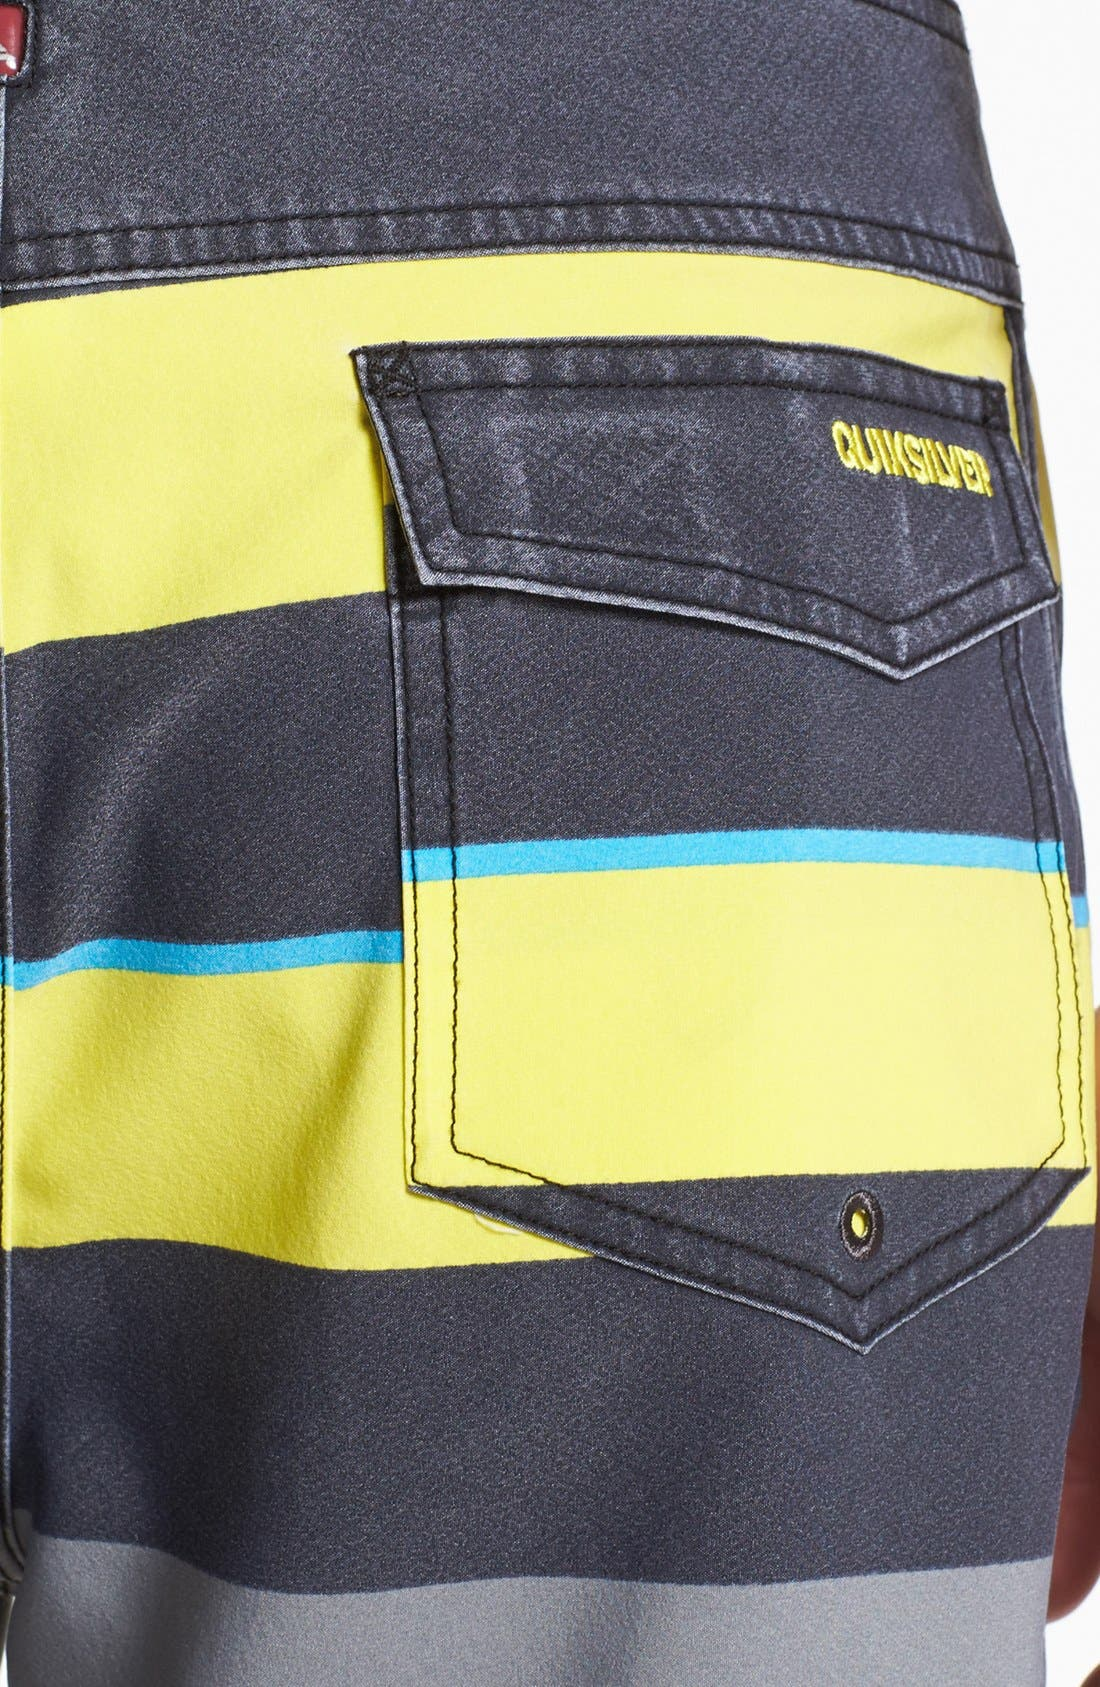 Alternate Image 3  - Quiksilver 'Cypher Briggs' Scalloped Board Shorts